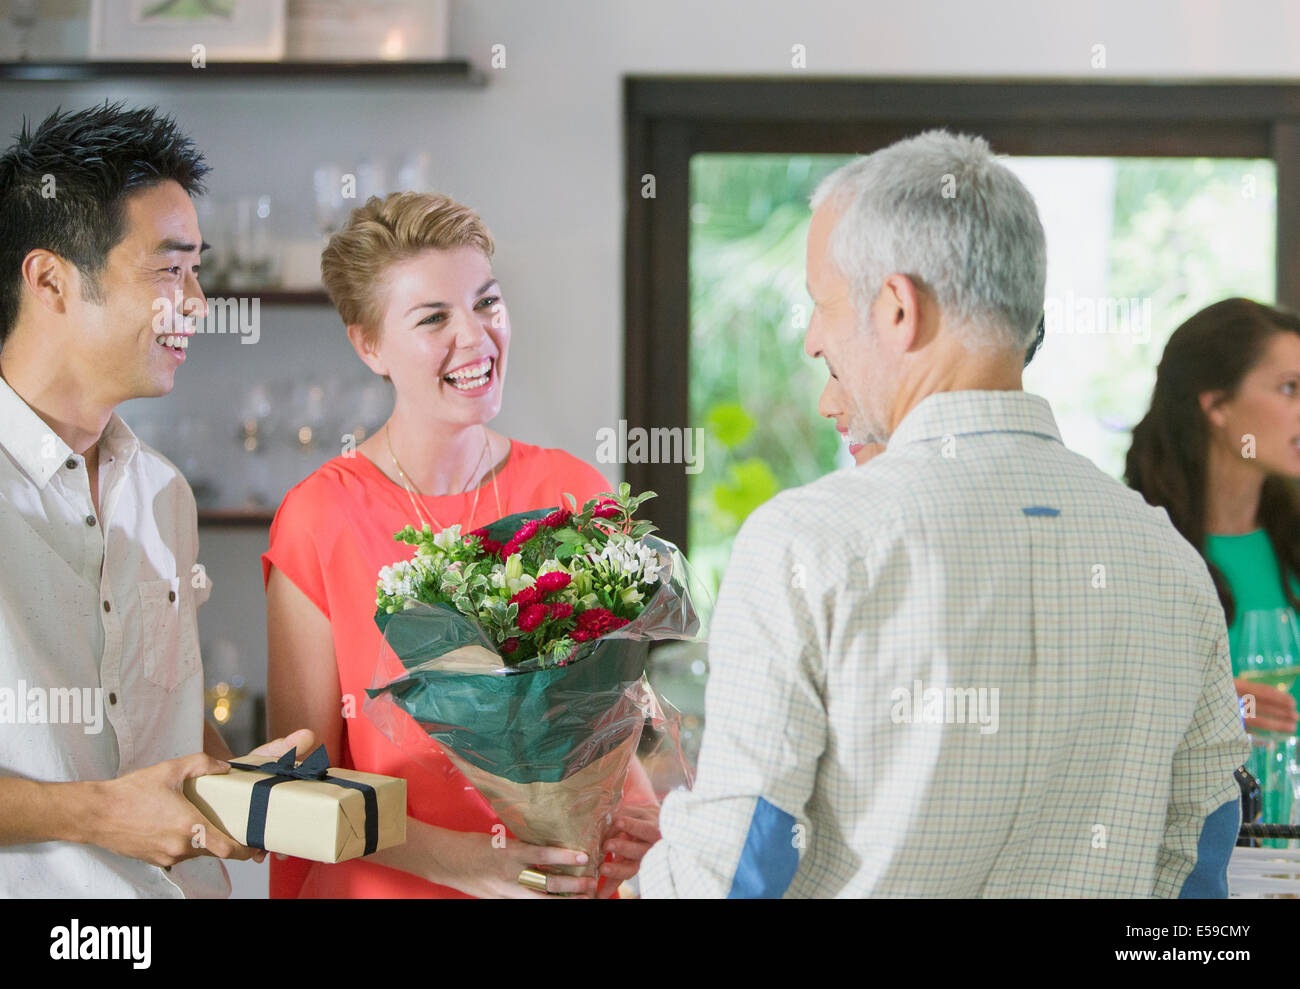 Friends exchanging gifts at party - Stock Image